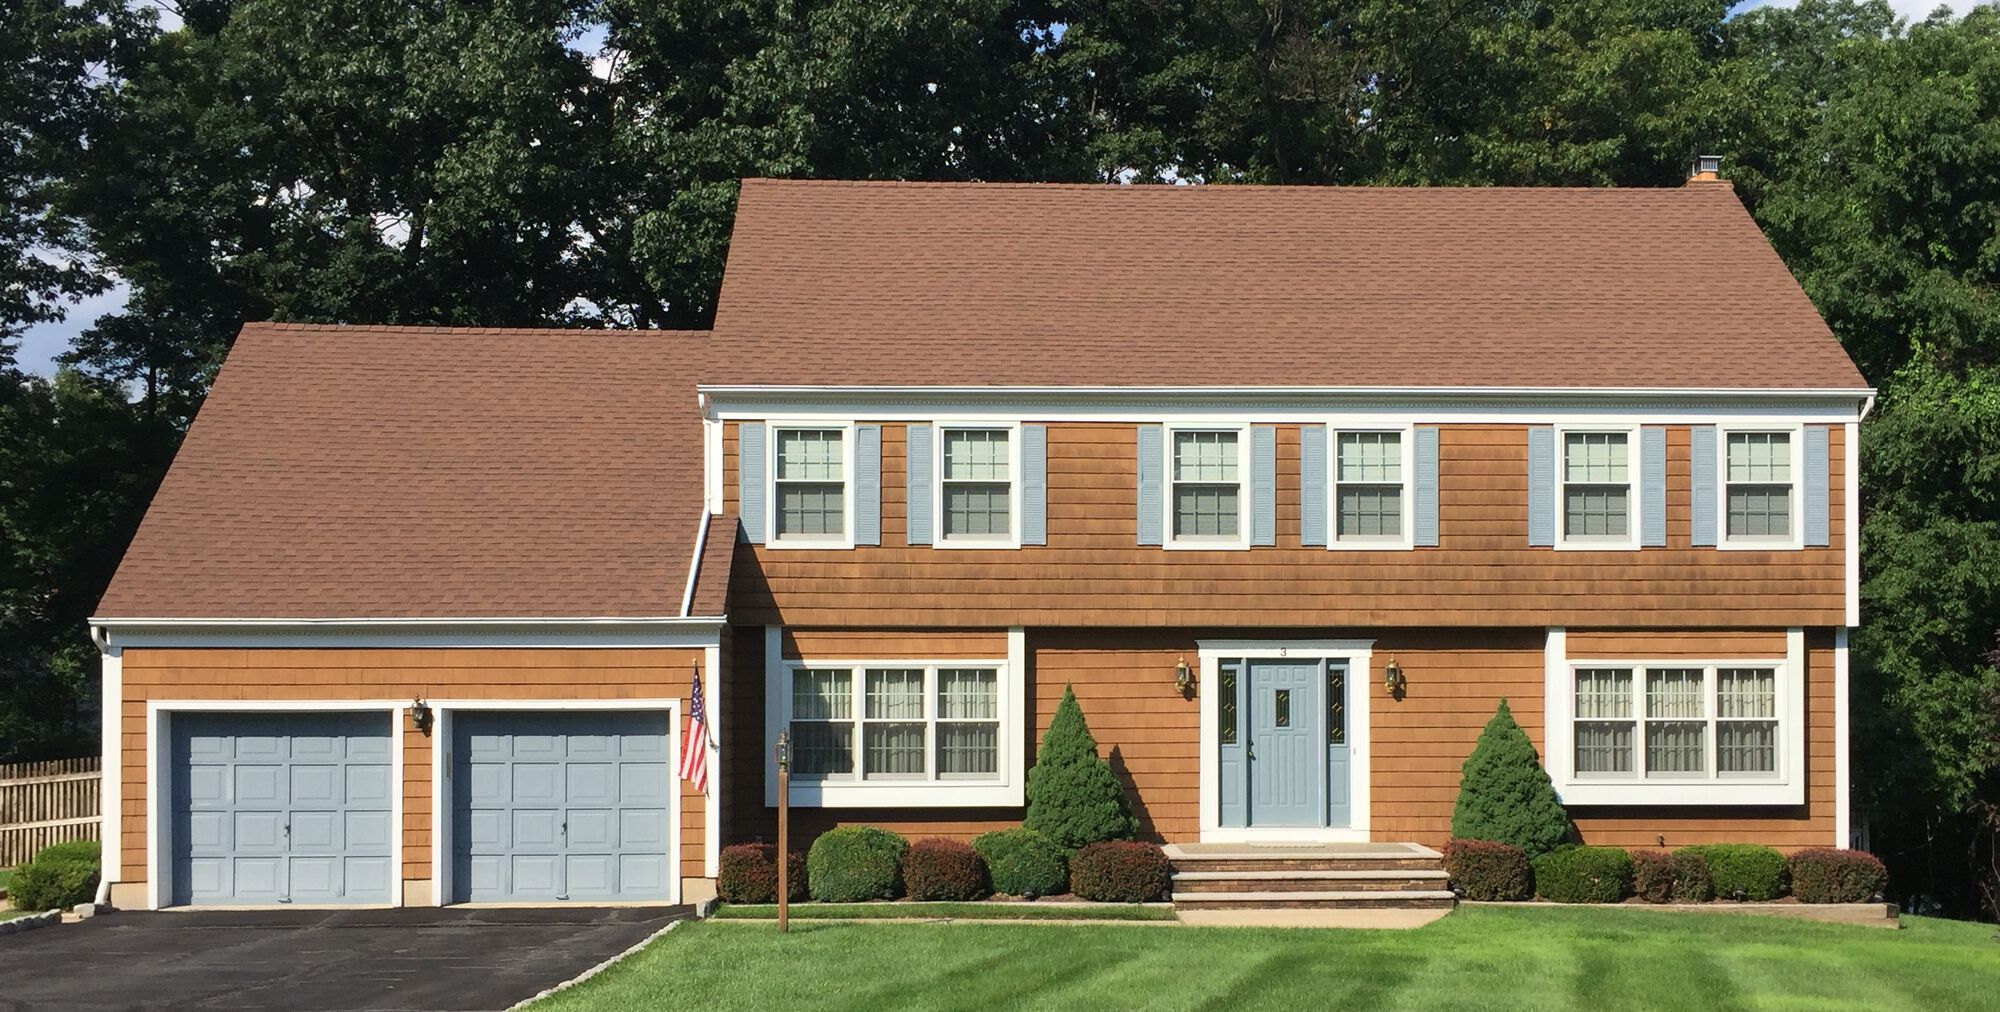 Certainteed Cedar Impressions Perfection Shakes and GAF HD Roofing in Cedar Knolls, Morris County NJ